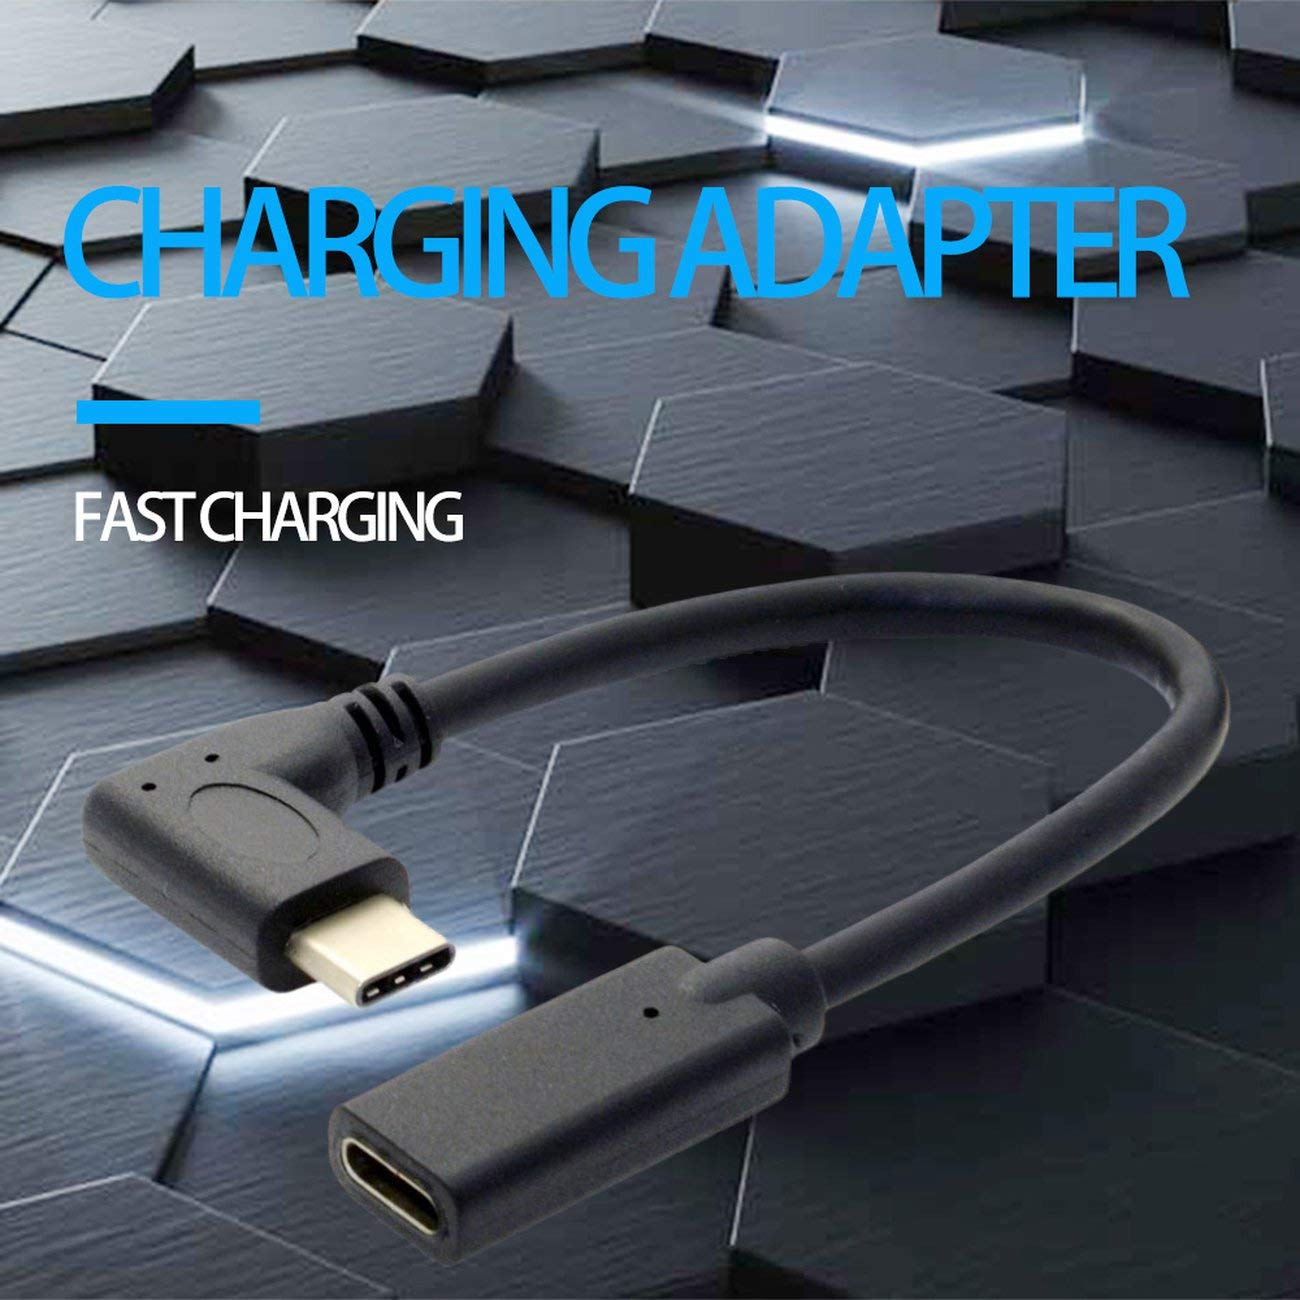 0.3 Meters Reversible Design Type C USB 3.1 90 Degree Male to USB-C Female Extension Data Cable Extender Cord Black